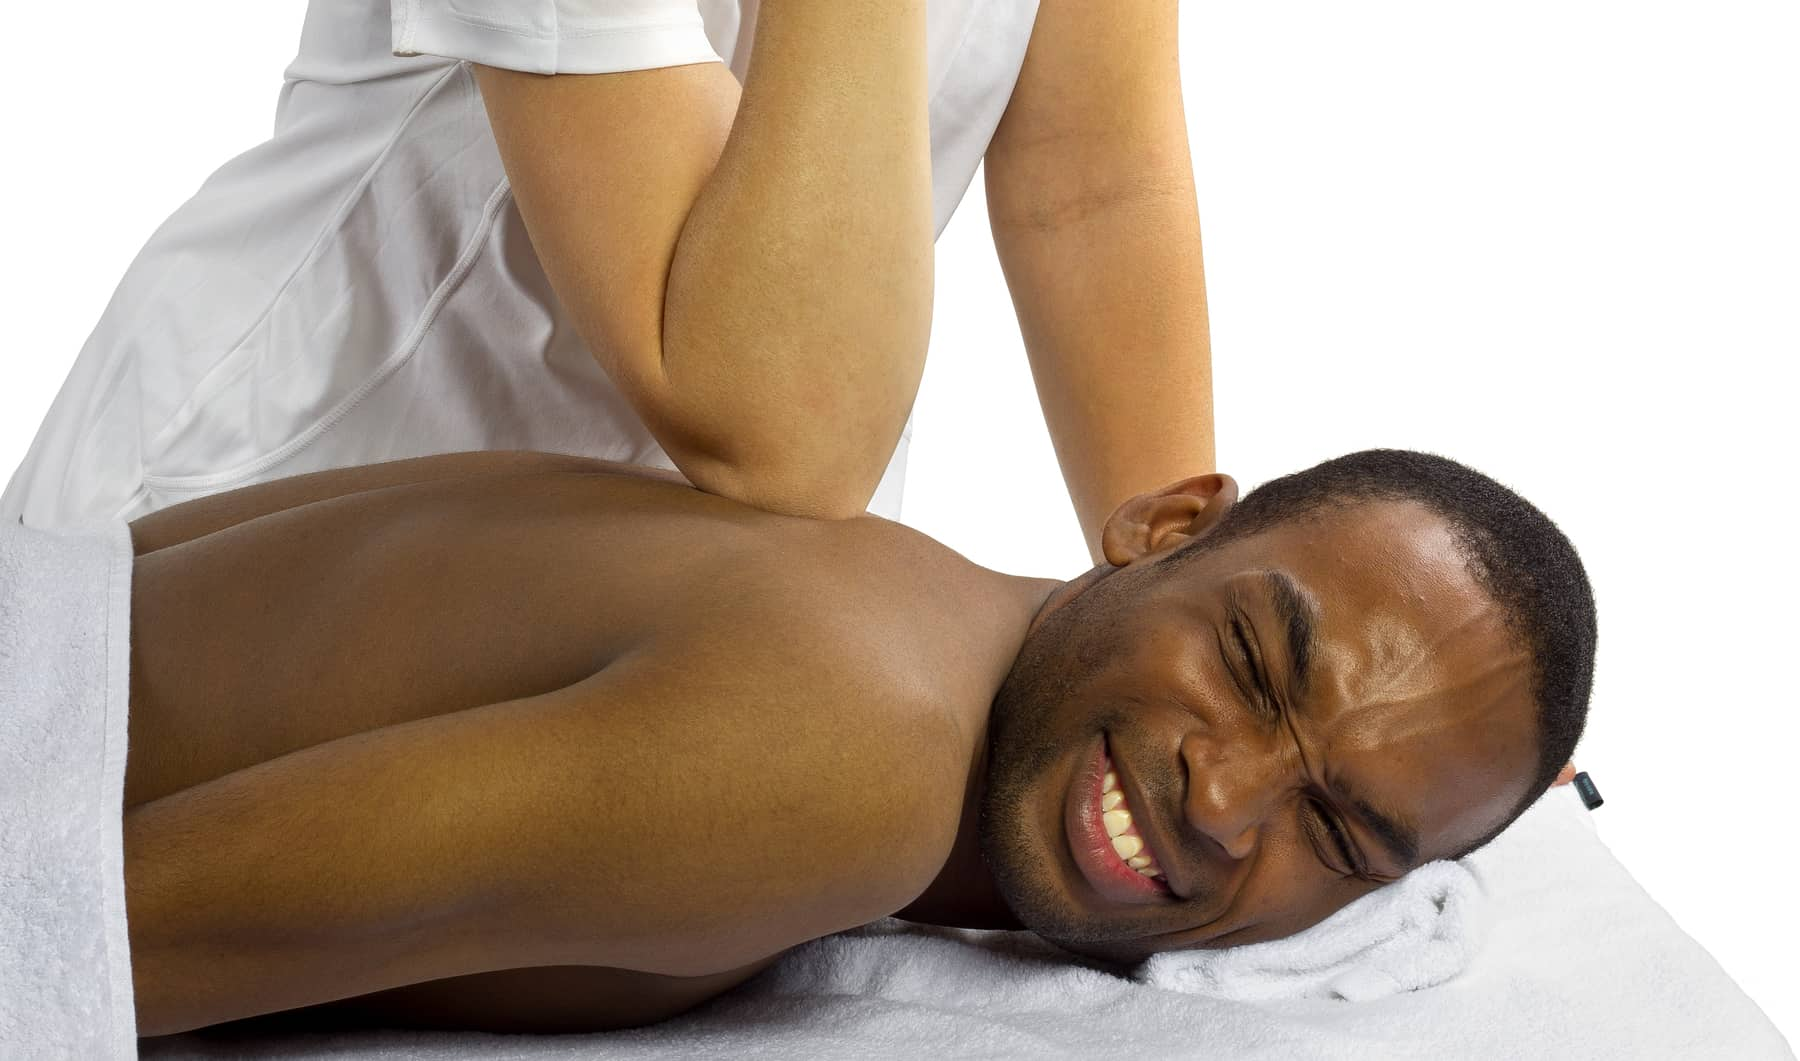 Swedish Massage Explained